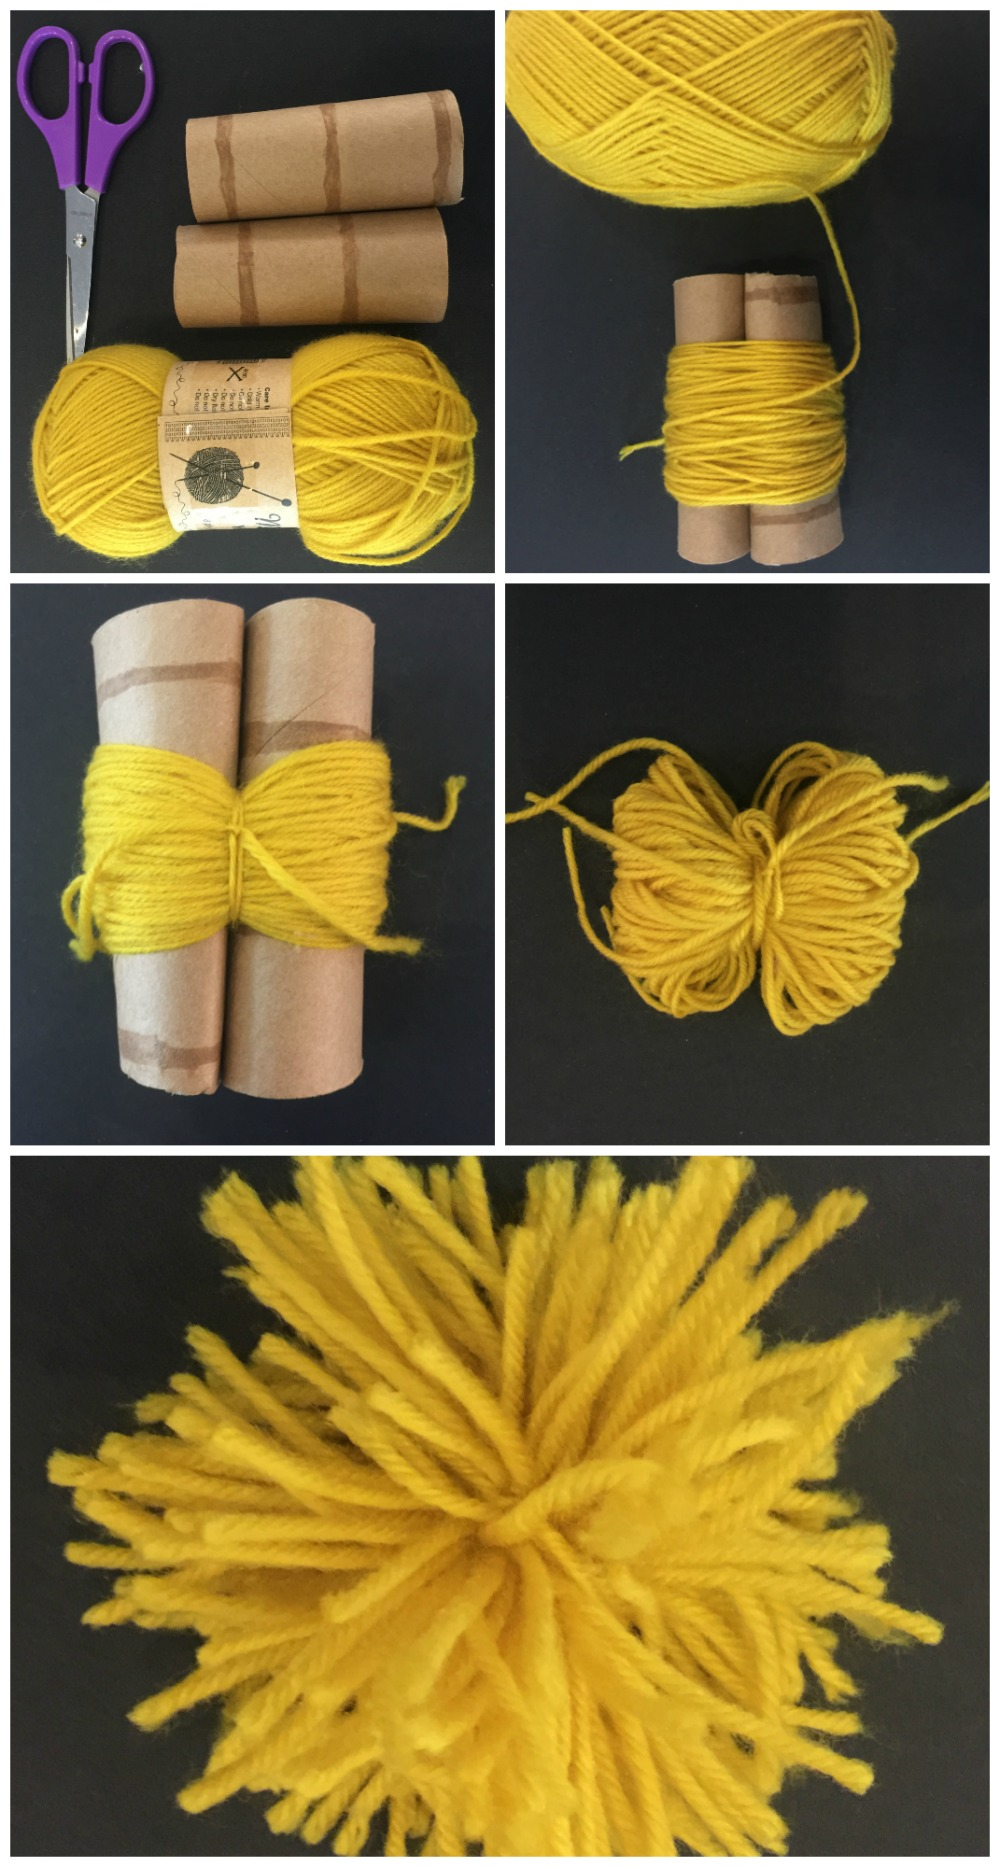 how to make a pom pom using toilet rolls